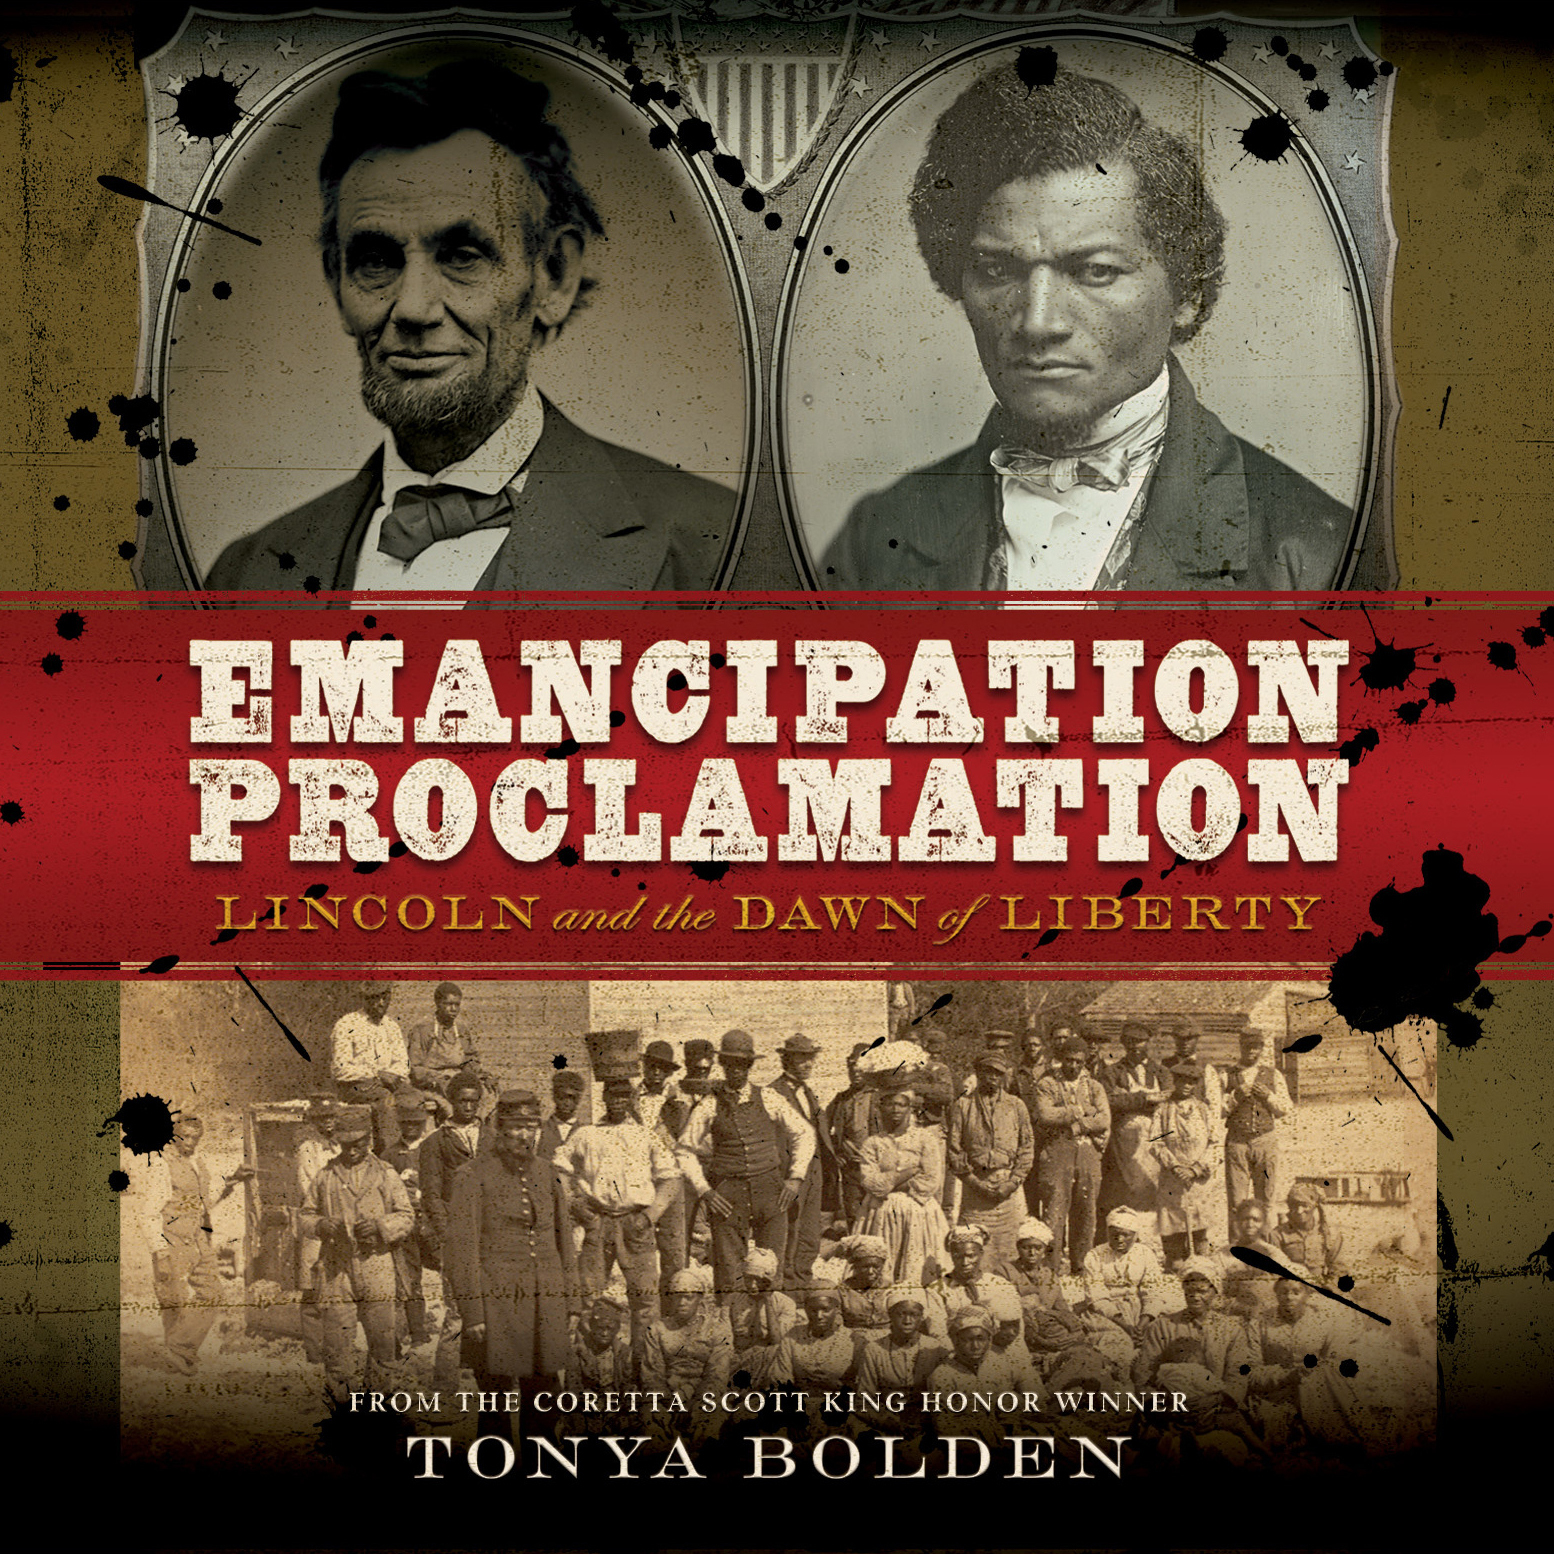 the emancipation proclamation book review All you can books gives you unlimited access to over 40,000 audiobooks the emancipation proclamation is a moving and thought provoking view more reviews.